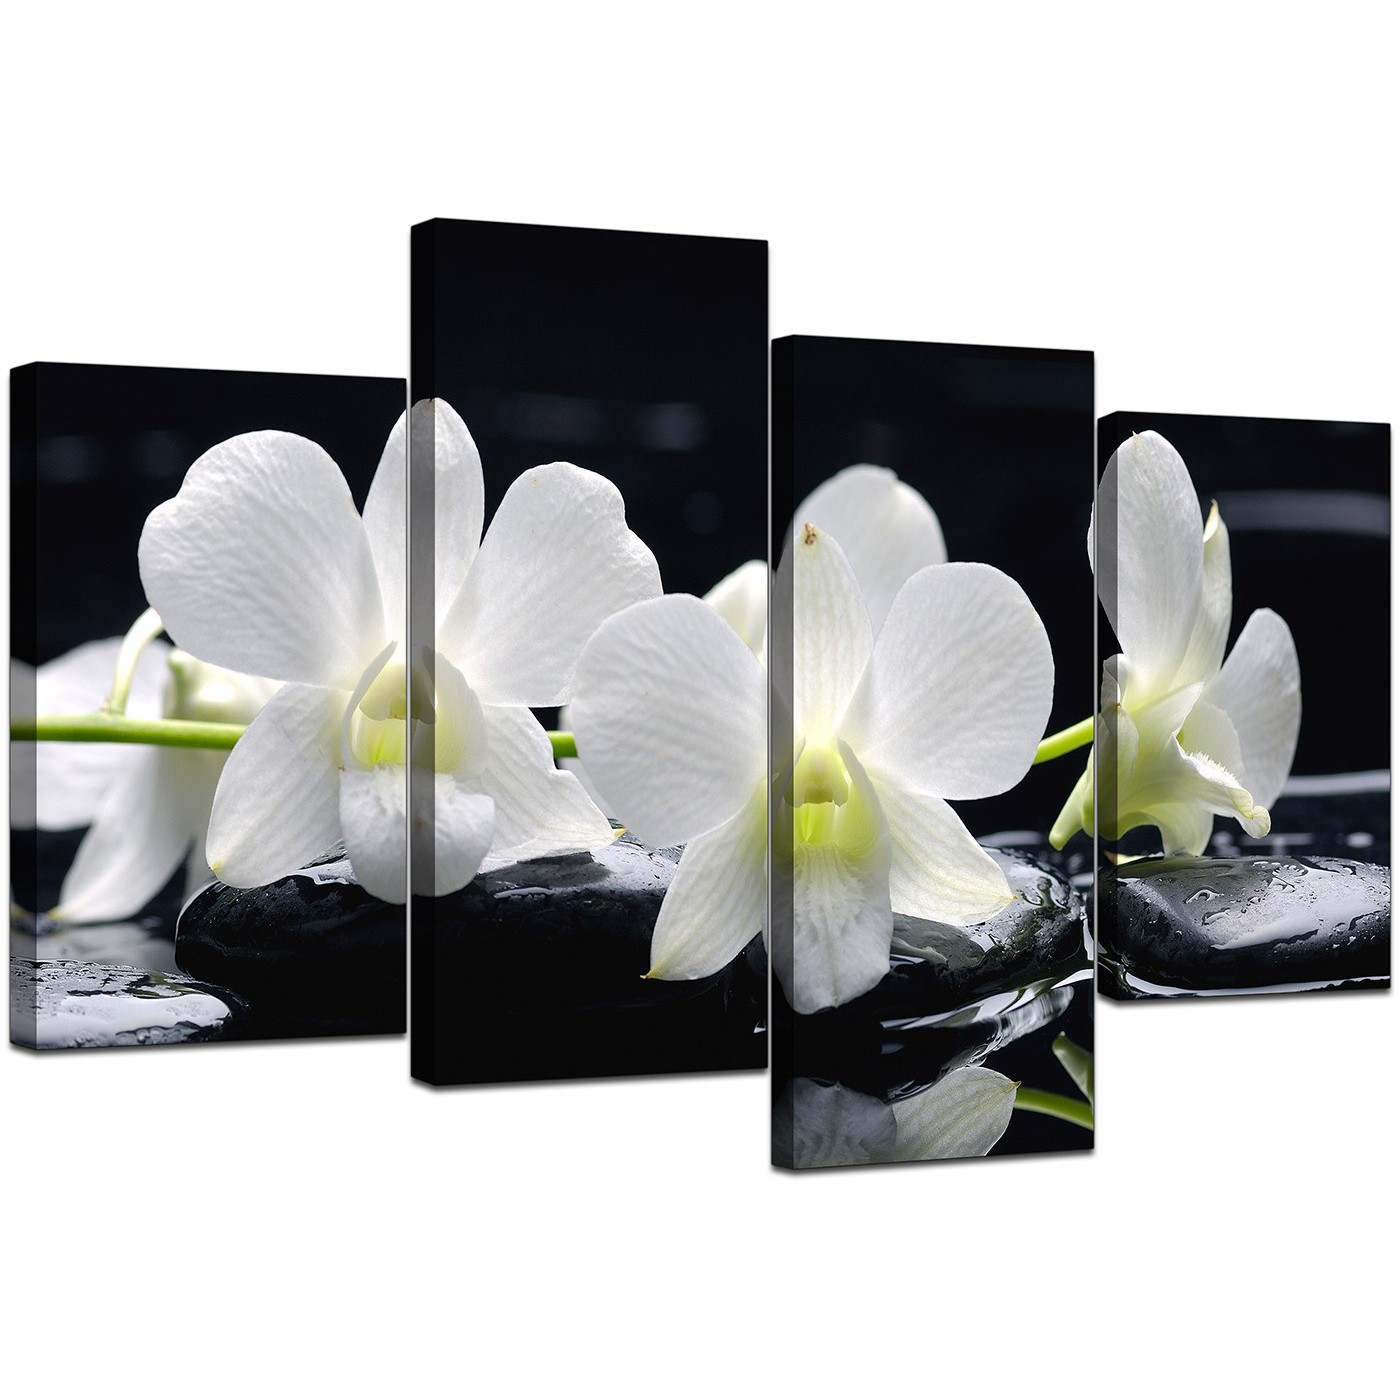 Display Gallery Item 5; Set Of Four Living Room Black White Canvas Art  Display Gallery Item 6